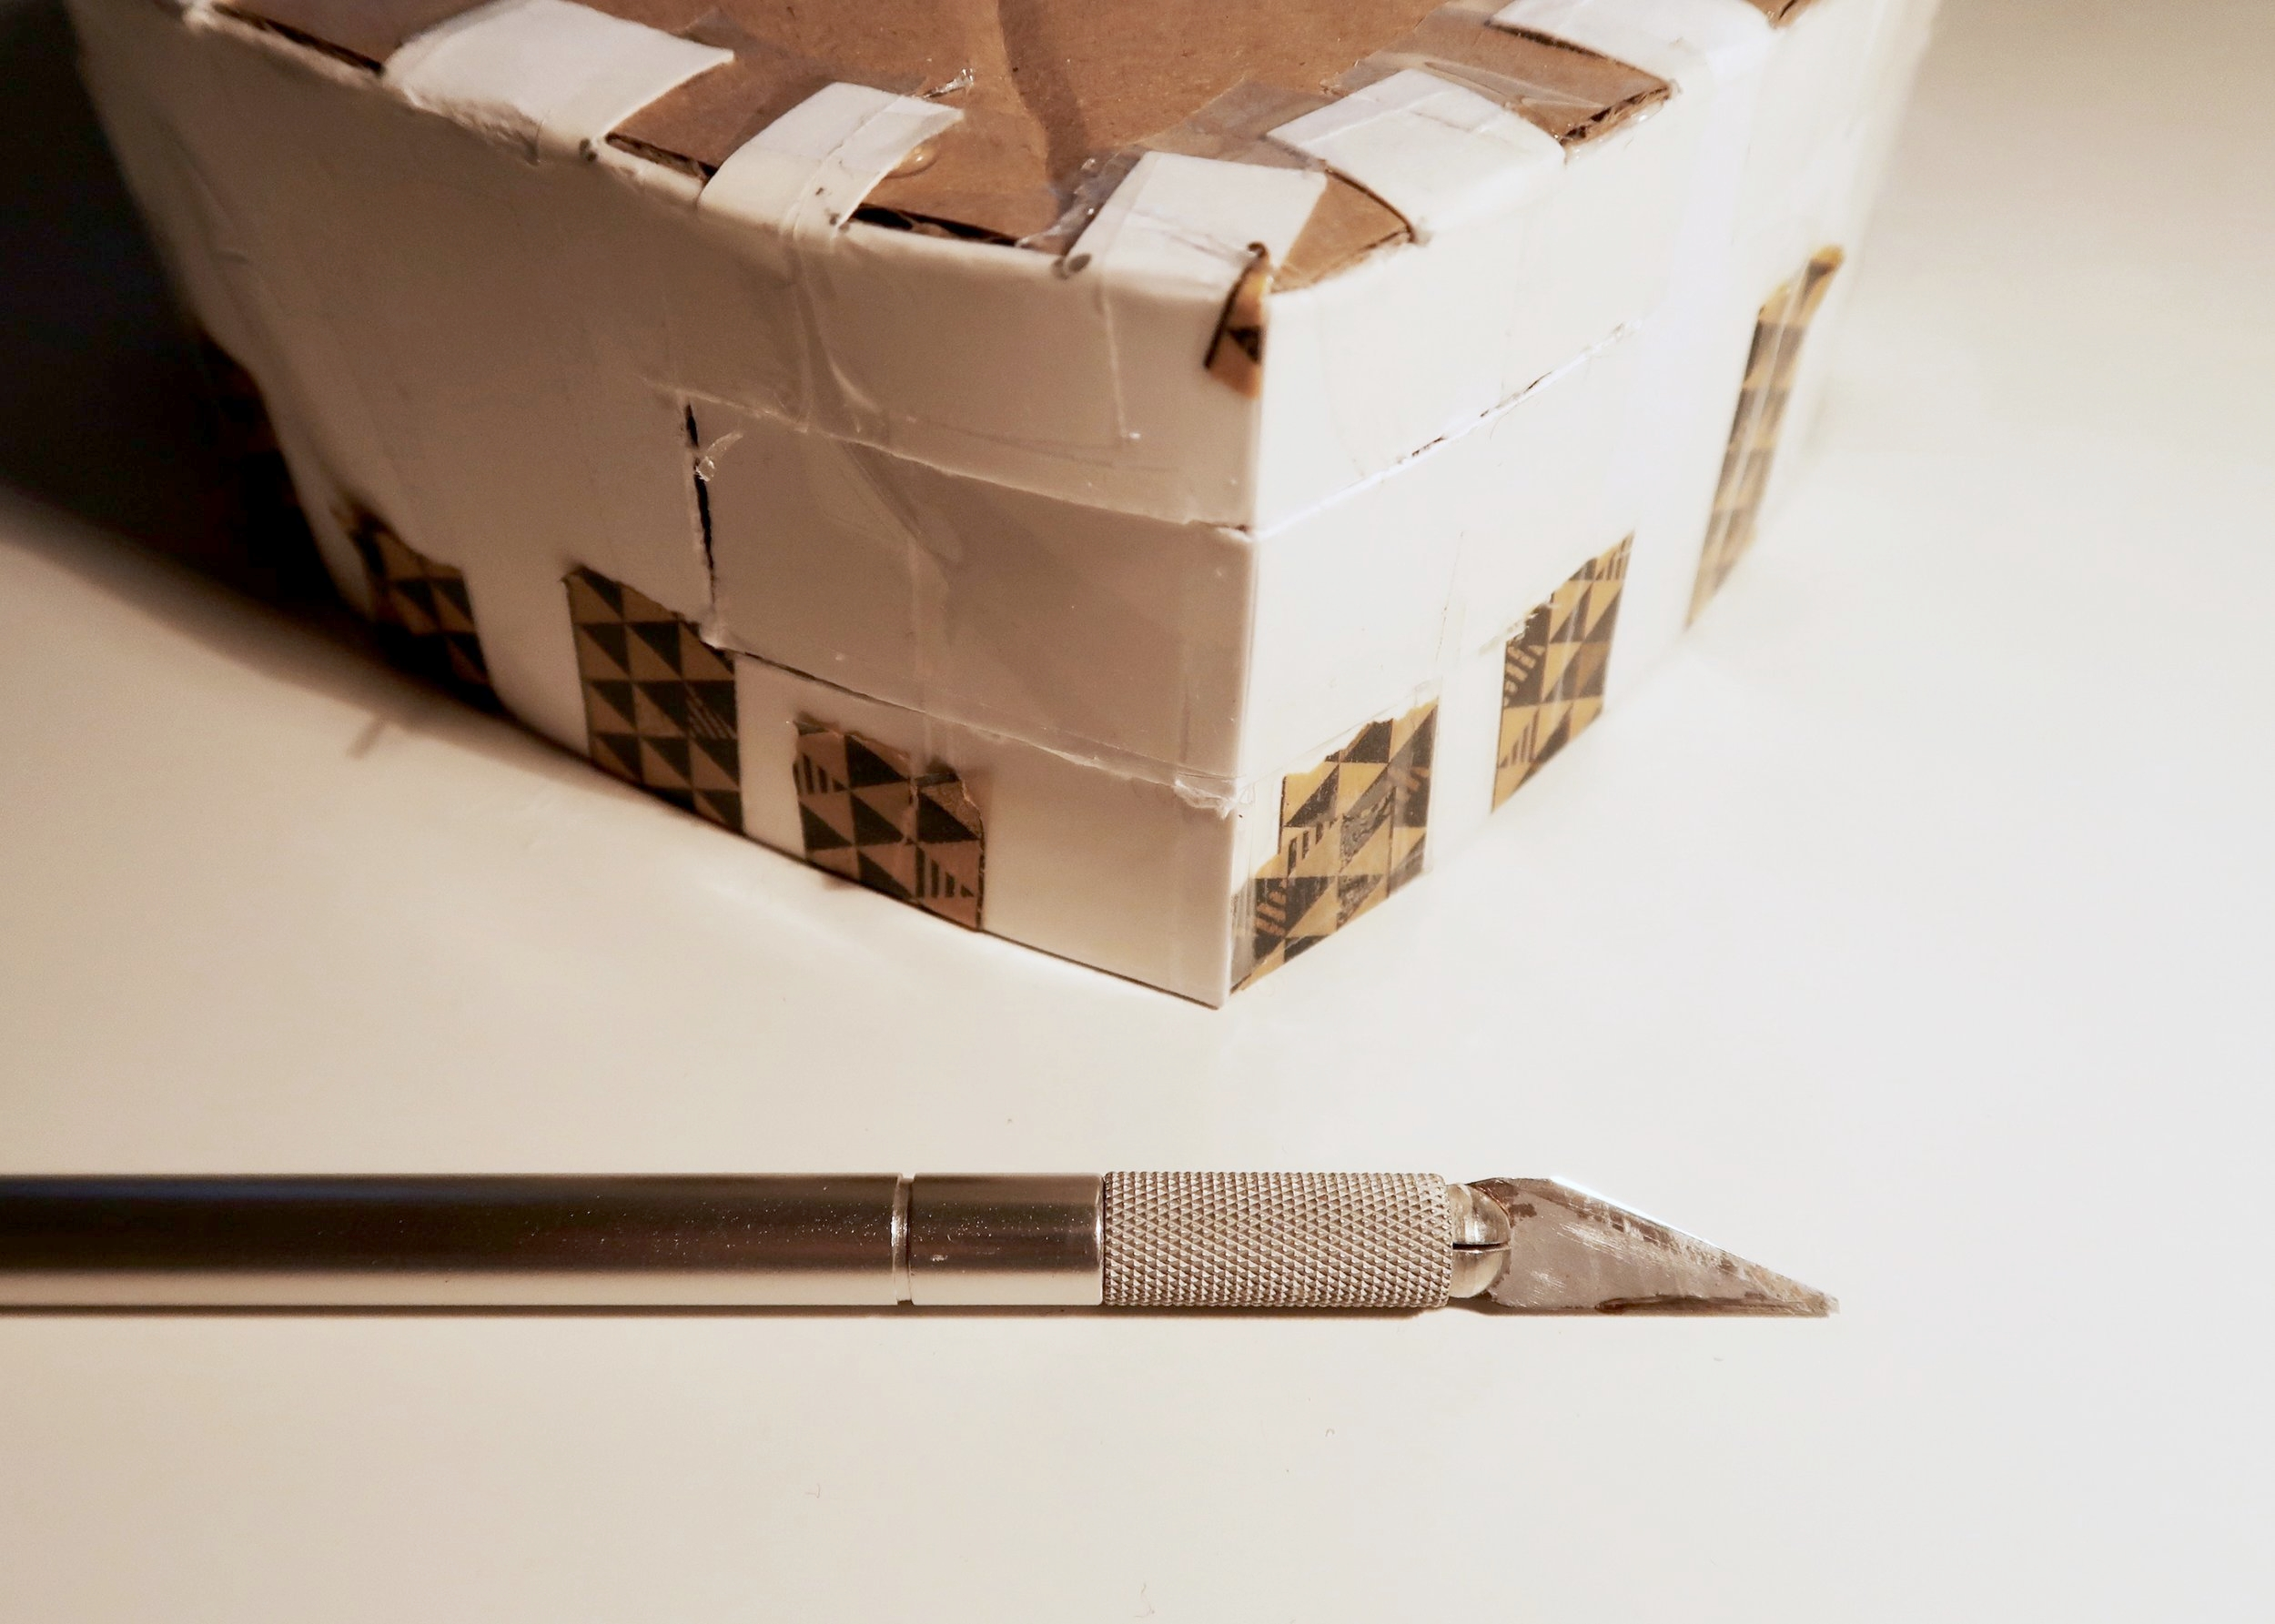 6. - Next, take a crafting knife and carefully cut a door into the base of your pinata. To do this, cut out a rectangle leaving one side uncut and attached to the box. Fold this side and add in your presents or sweets. Temporarily secure the door closed with a small bit of tape.